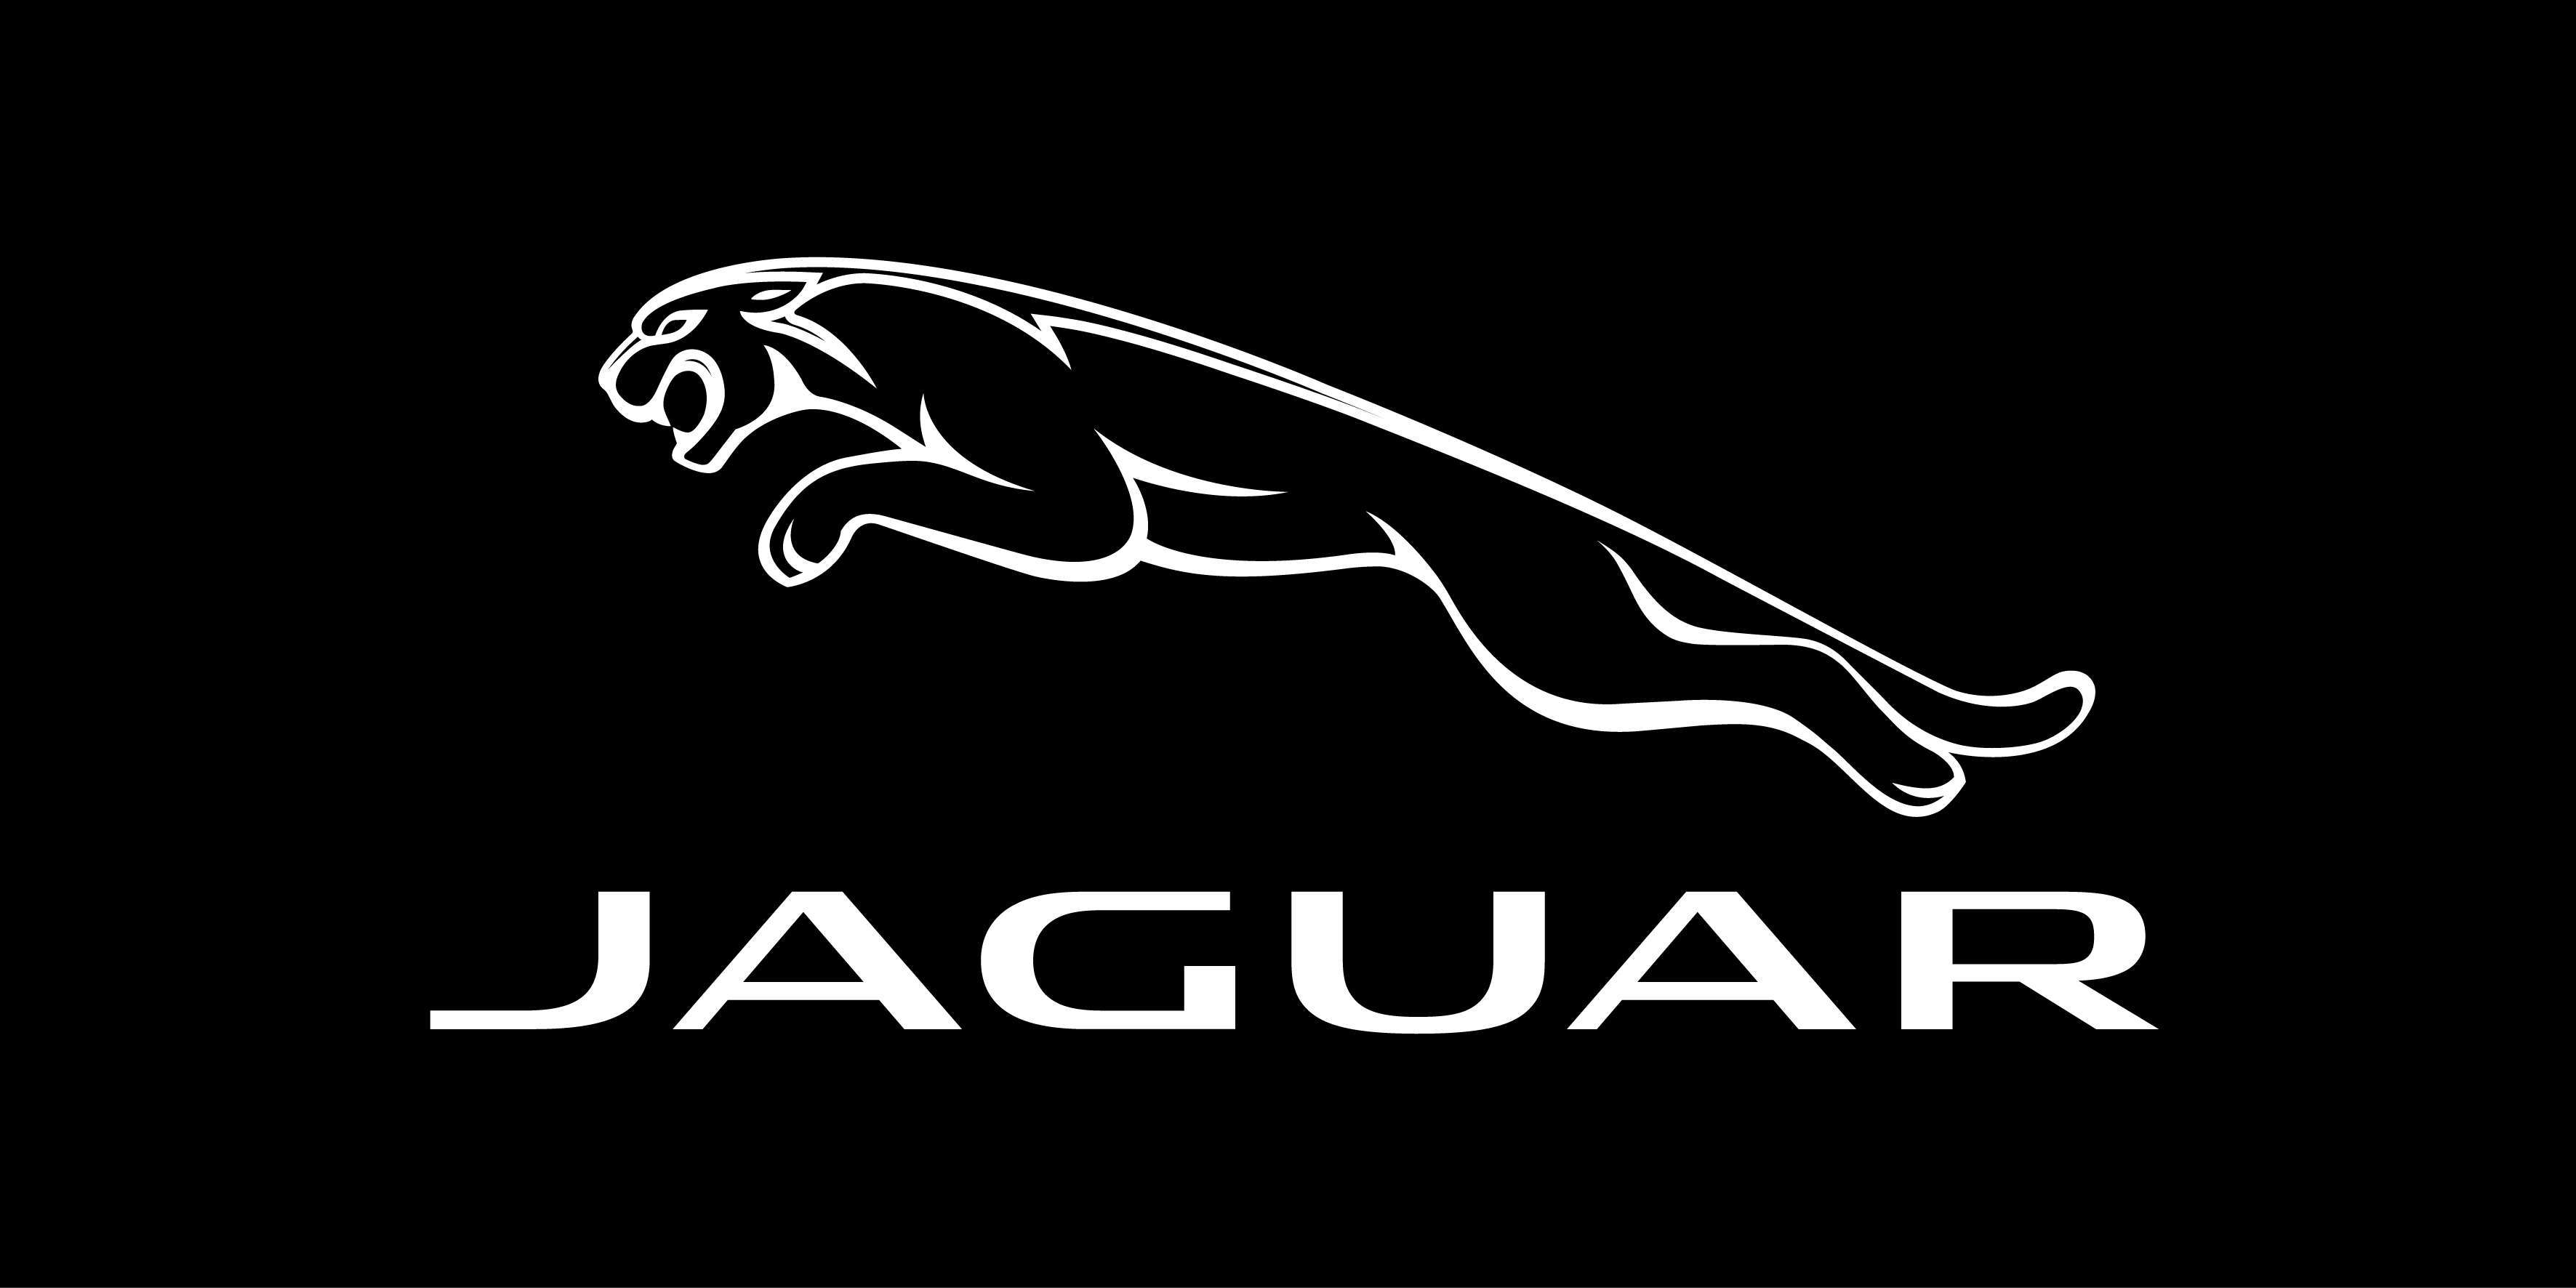 Free Jaguar 3543x1772 px- HDQ Wallpapers